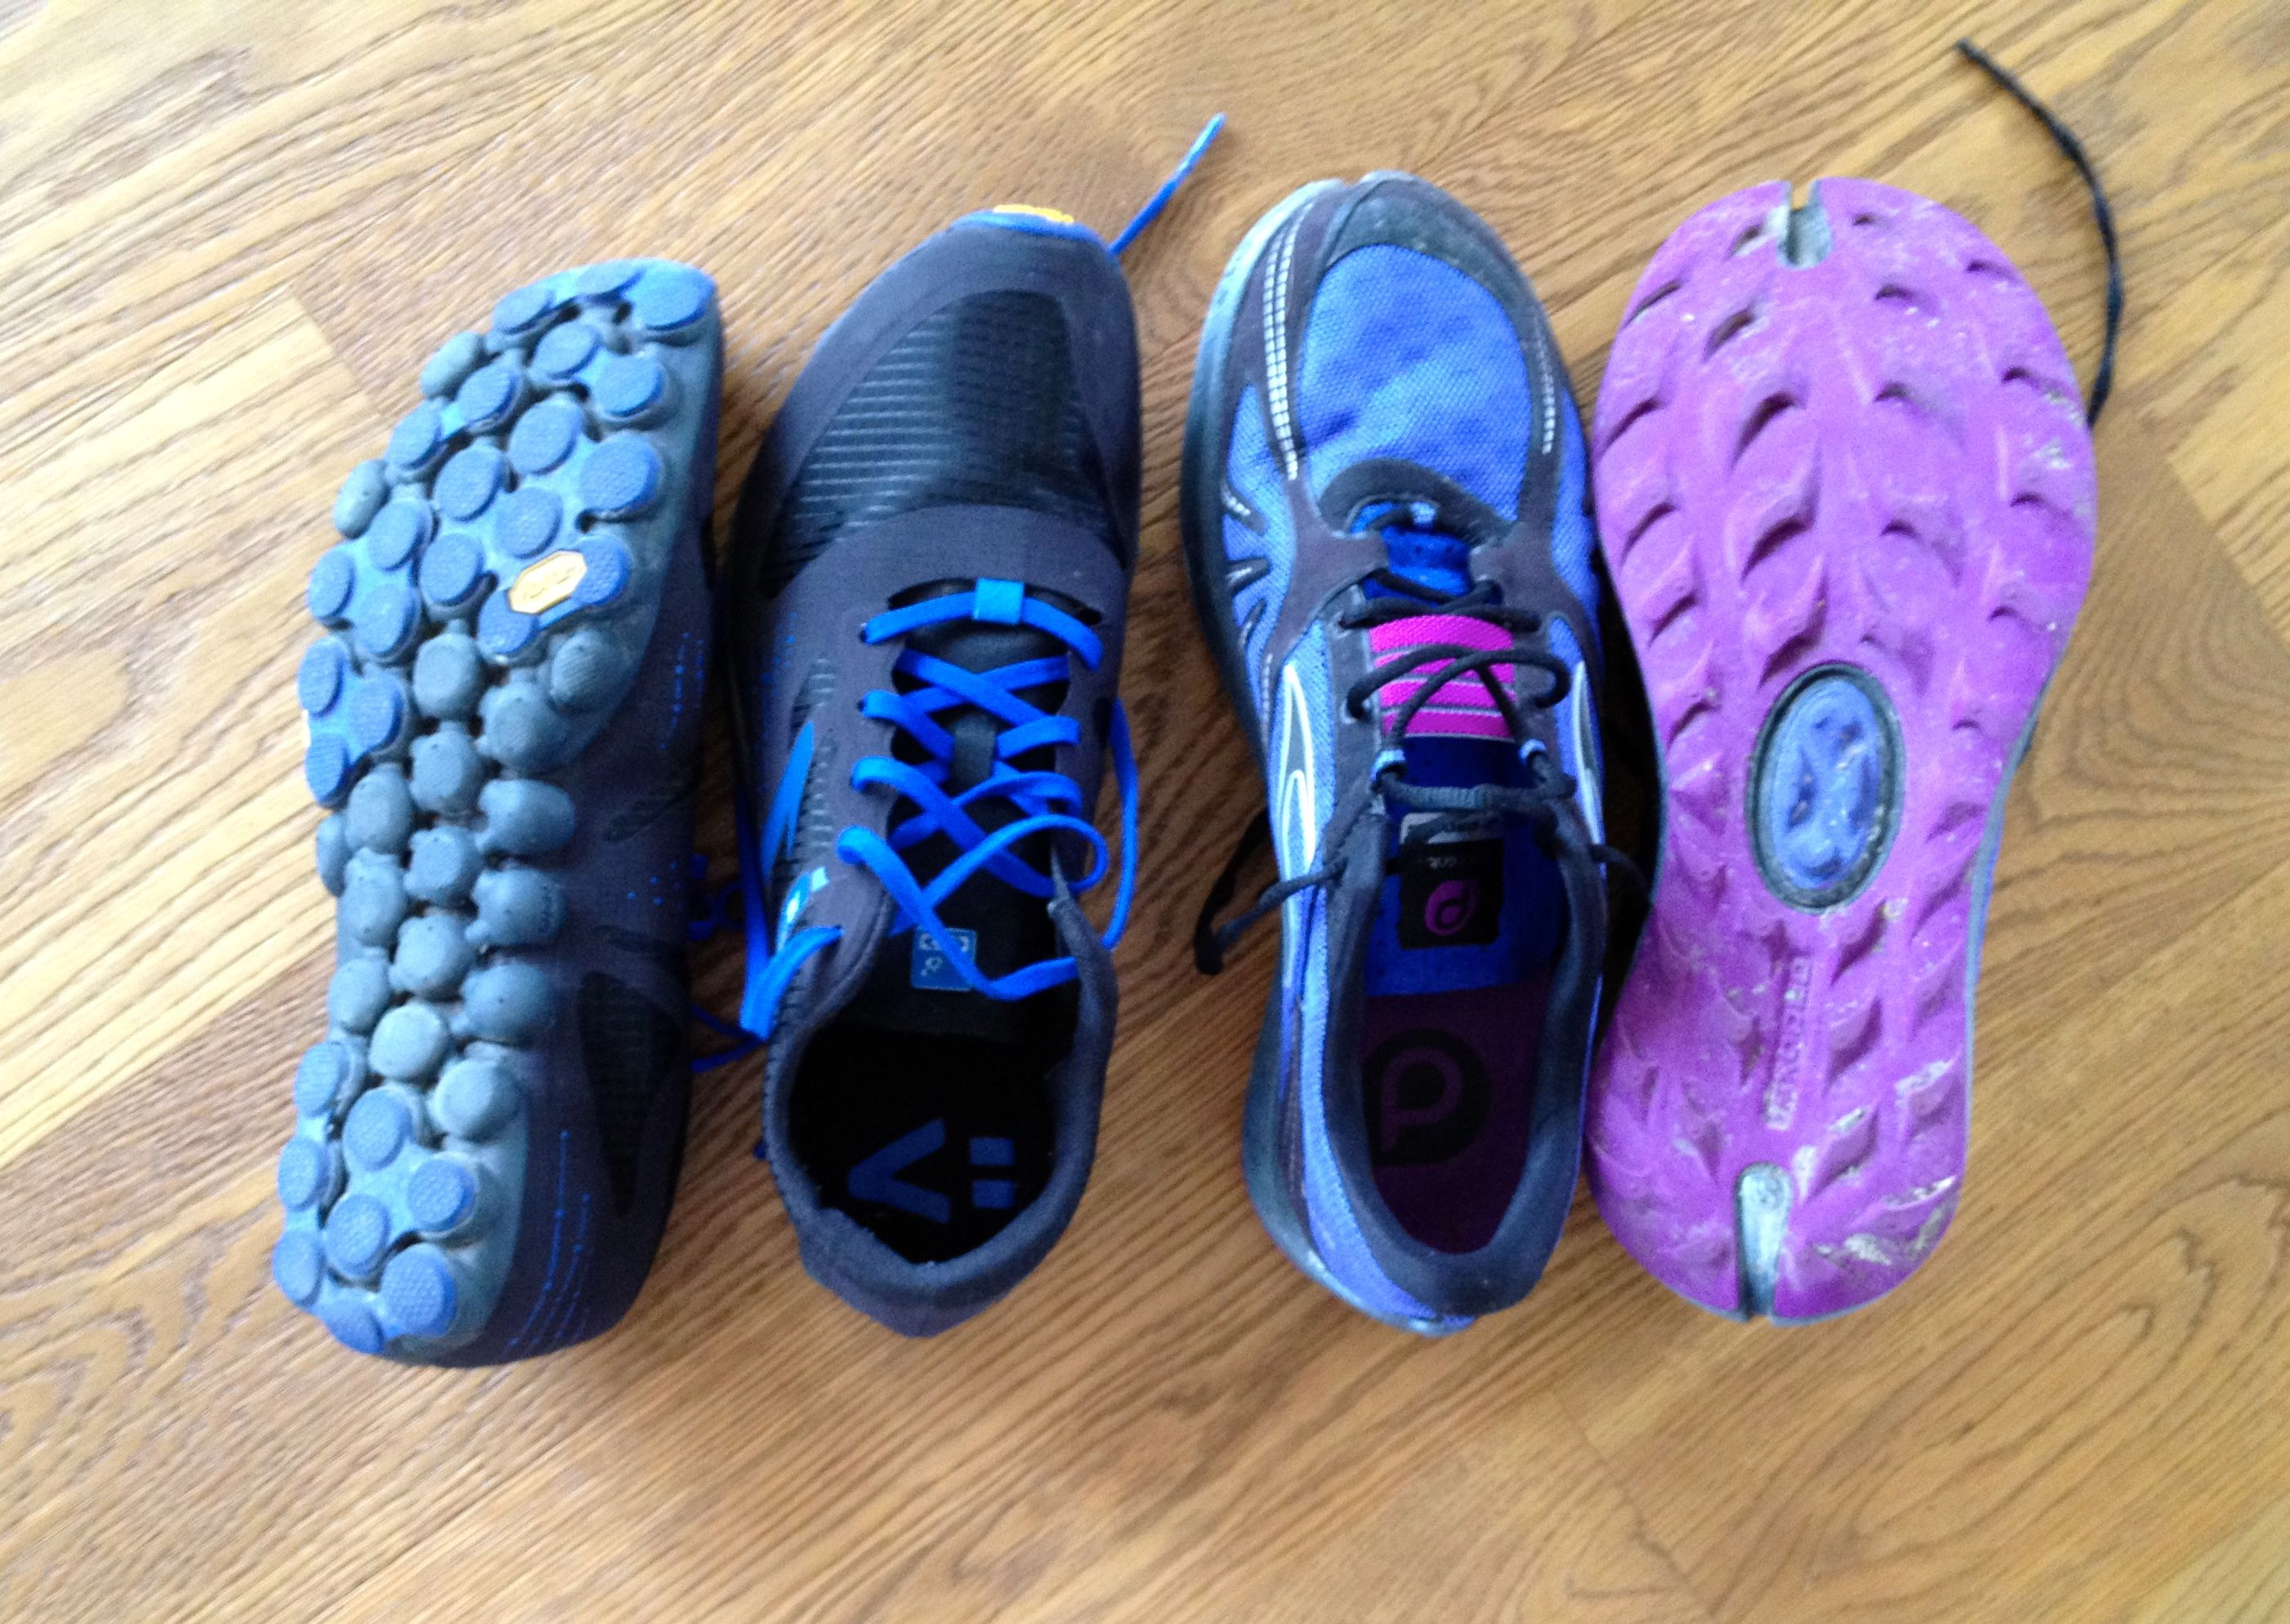 I Bought Seven Pairs New Running Shoes Me Two Minimalist The Memory Lane Gydle